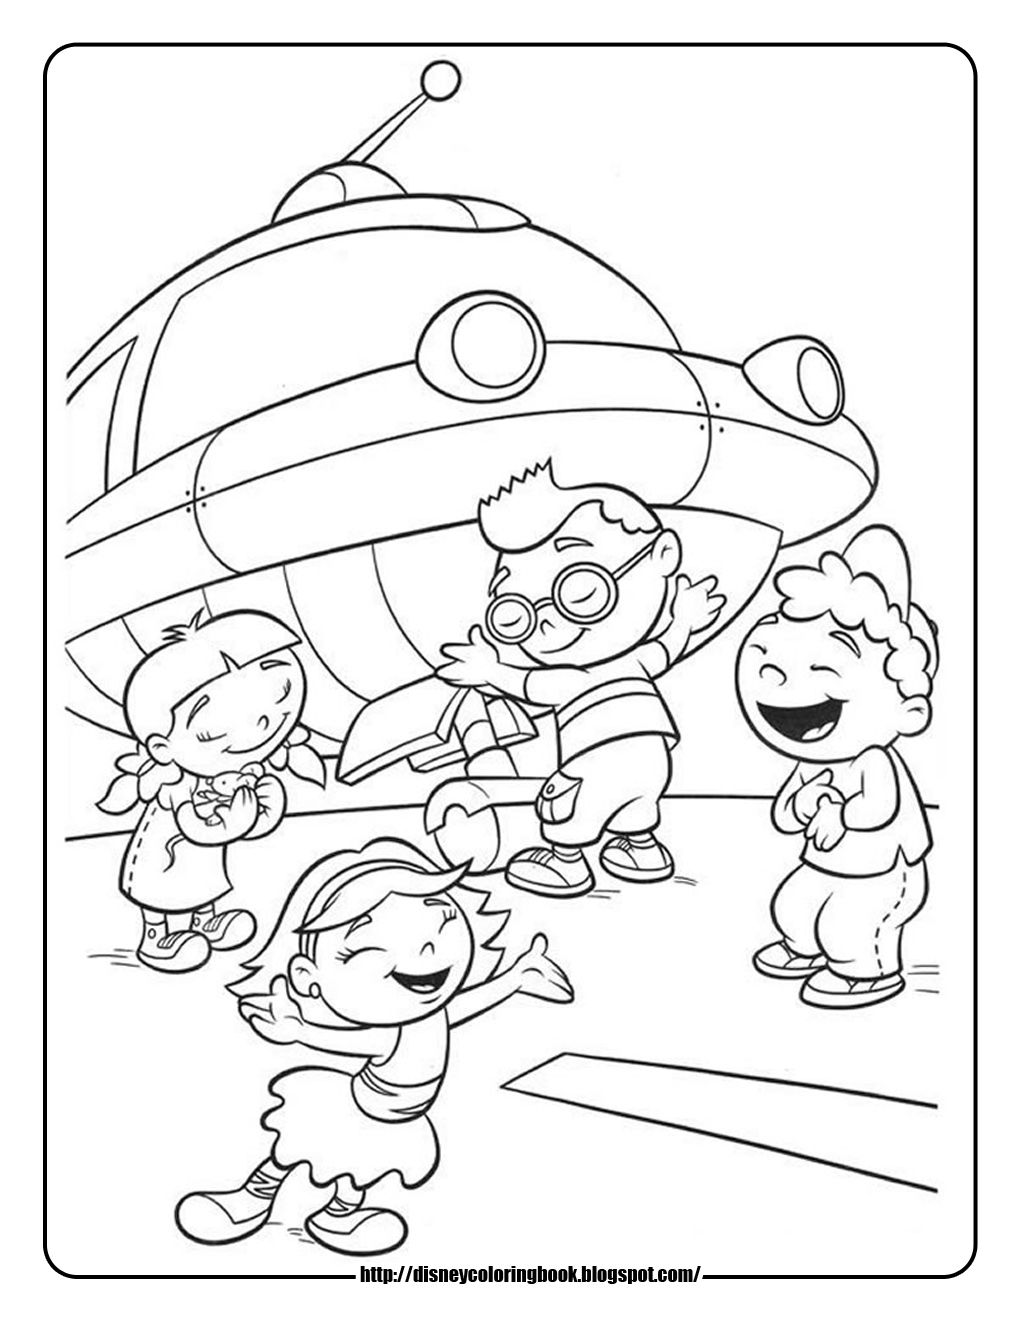 little einsteins online coloring pages - photo #9